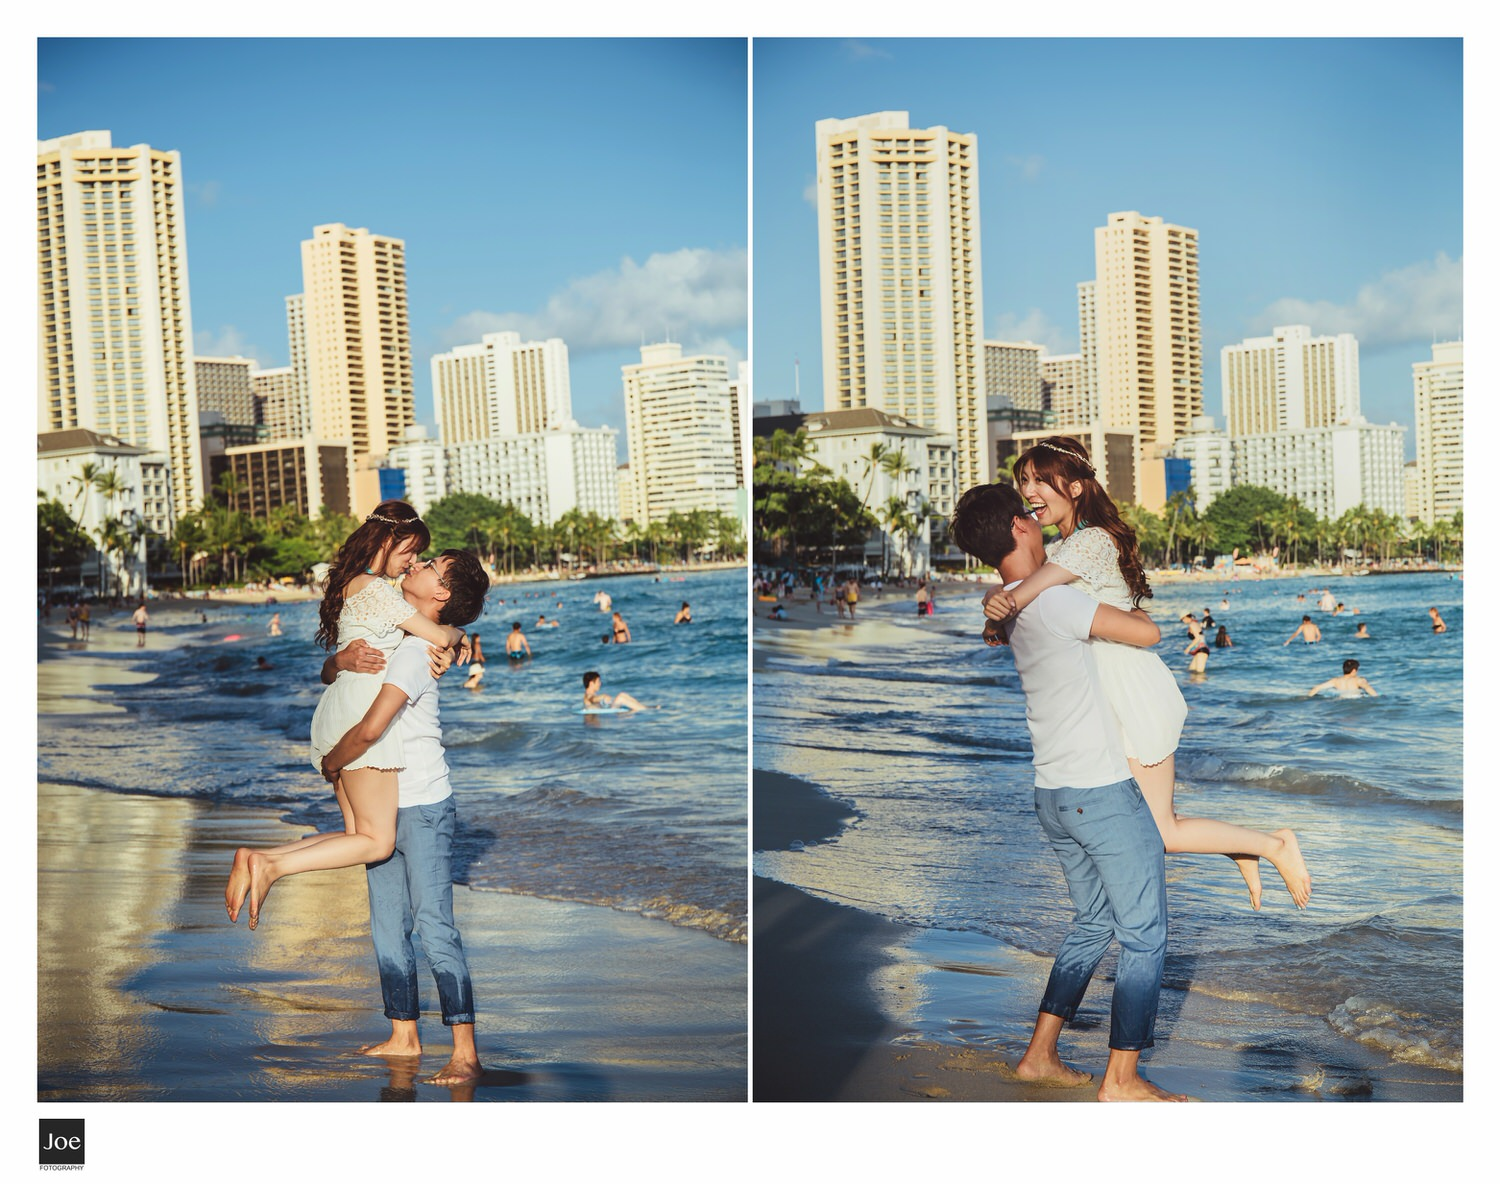 127-waikiki-beach-hawaii-pre-wedding-tiffany-tony-joe-fotography.jpg